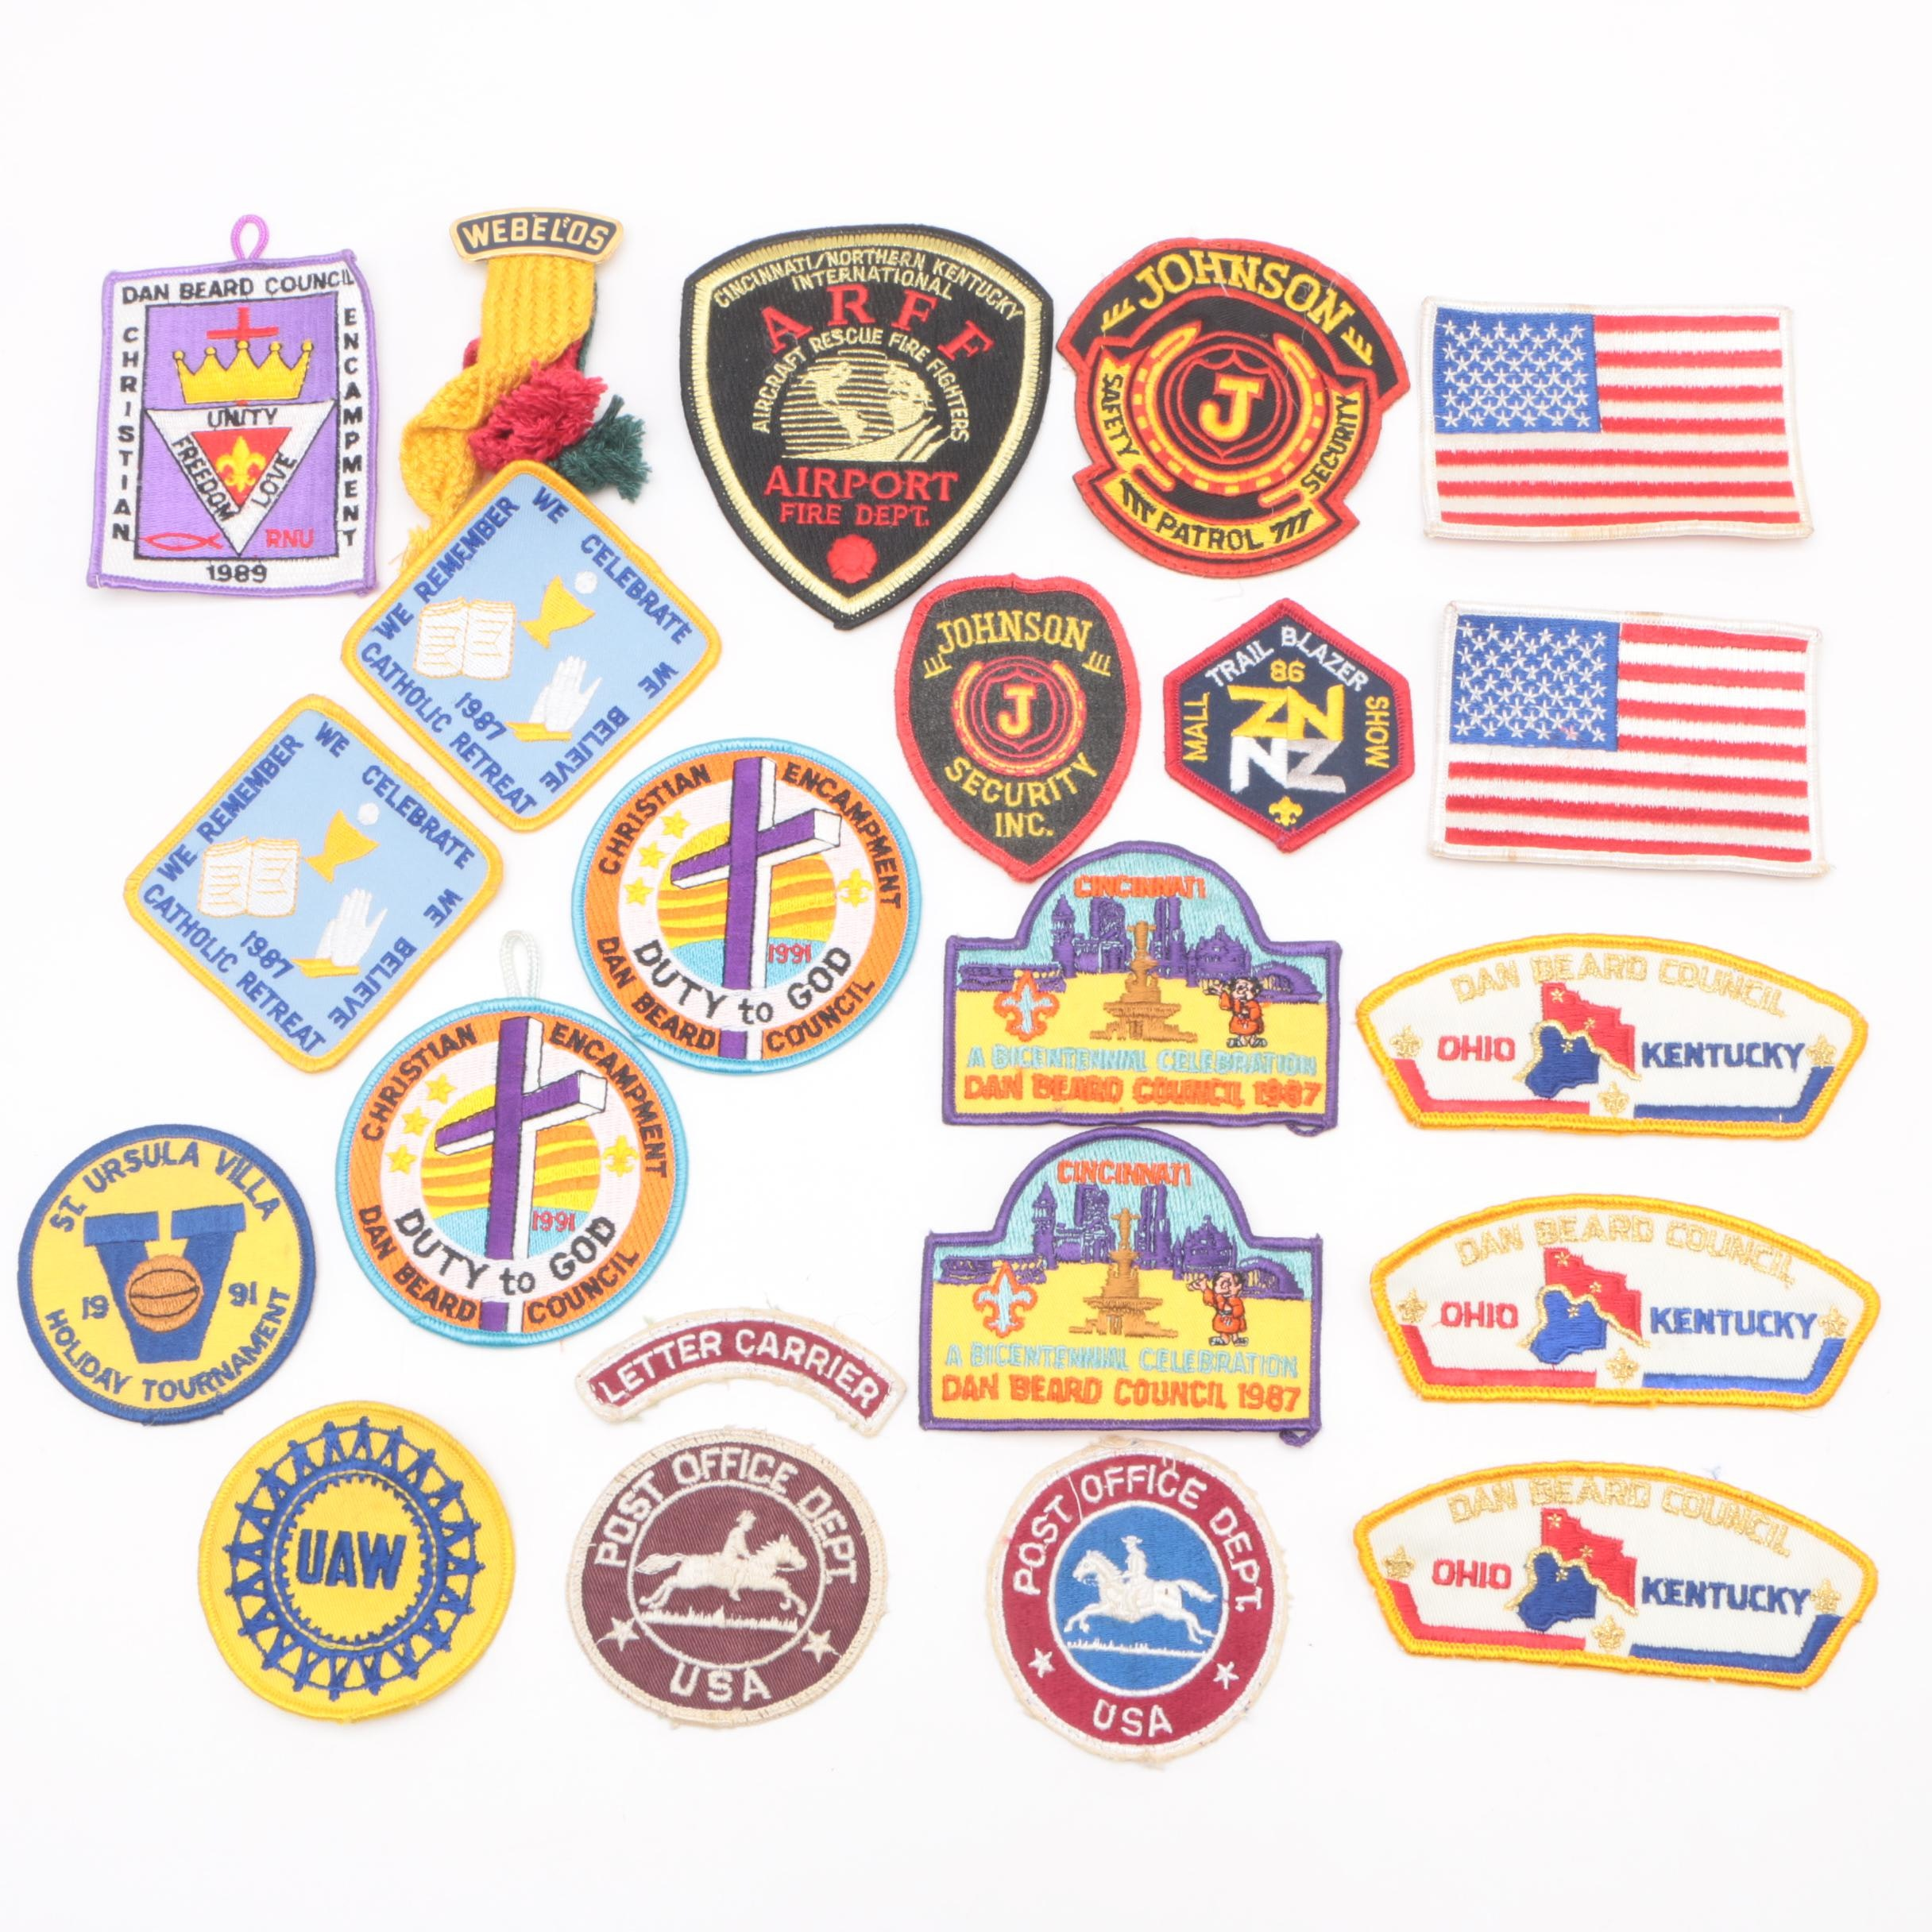 Vintage Patches including Dan Beard Council, UAW and USPS